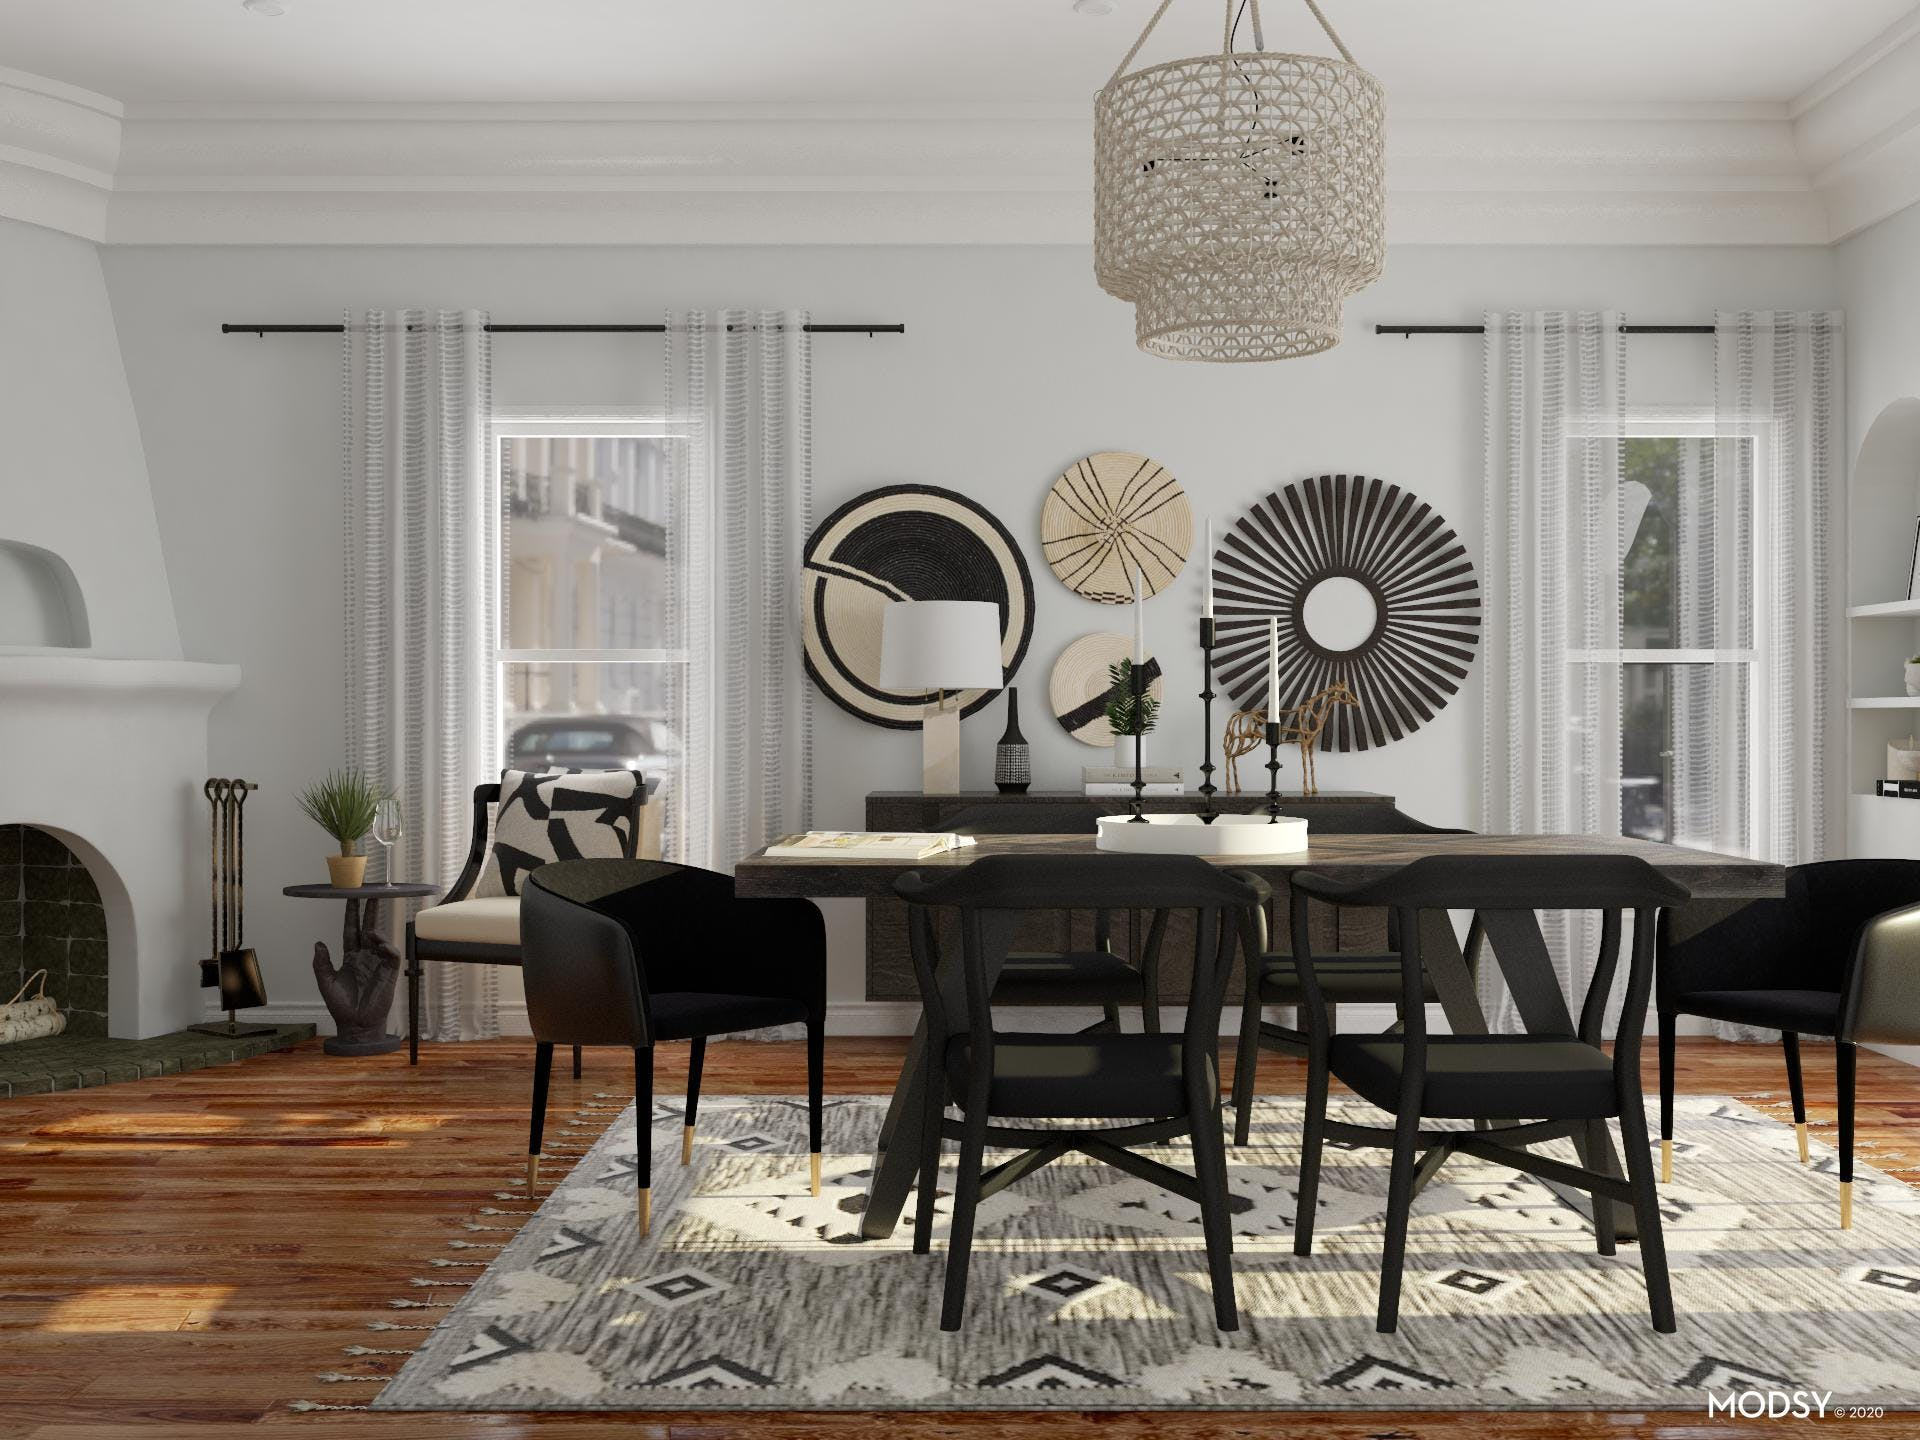 Eclectic Dining Room: Black & White